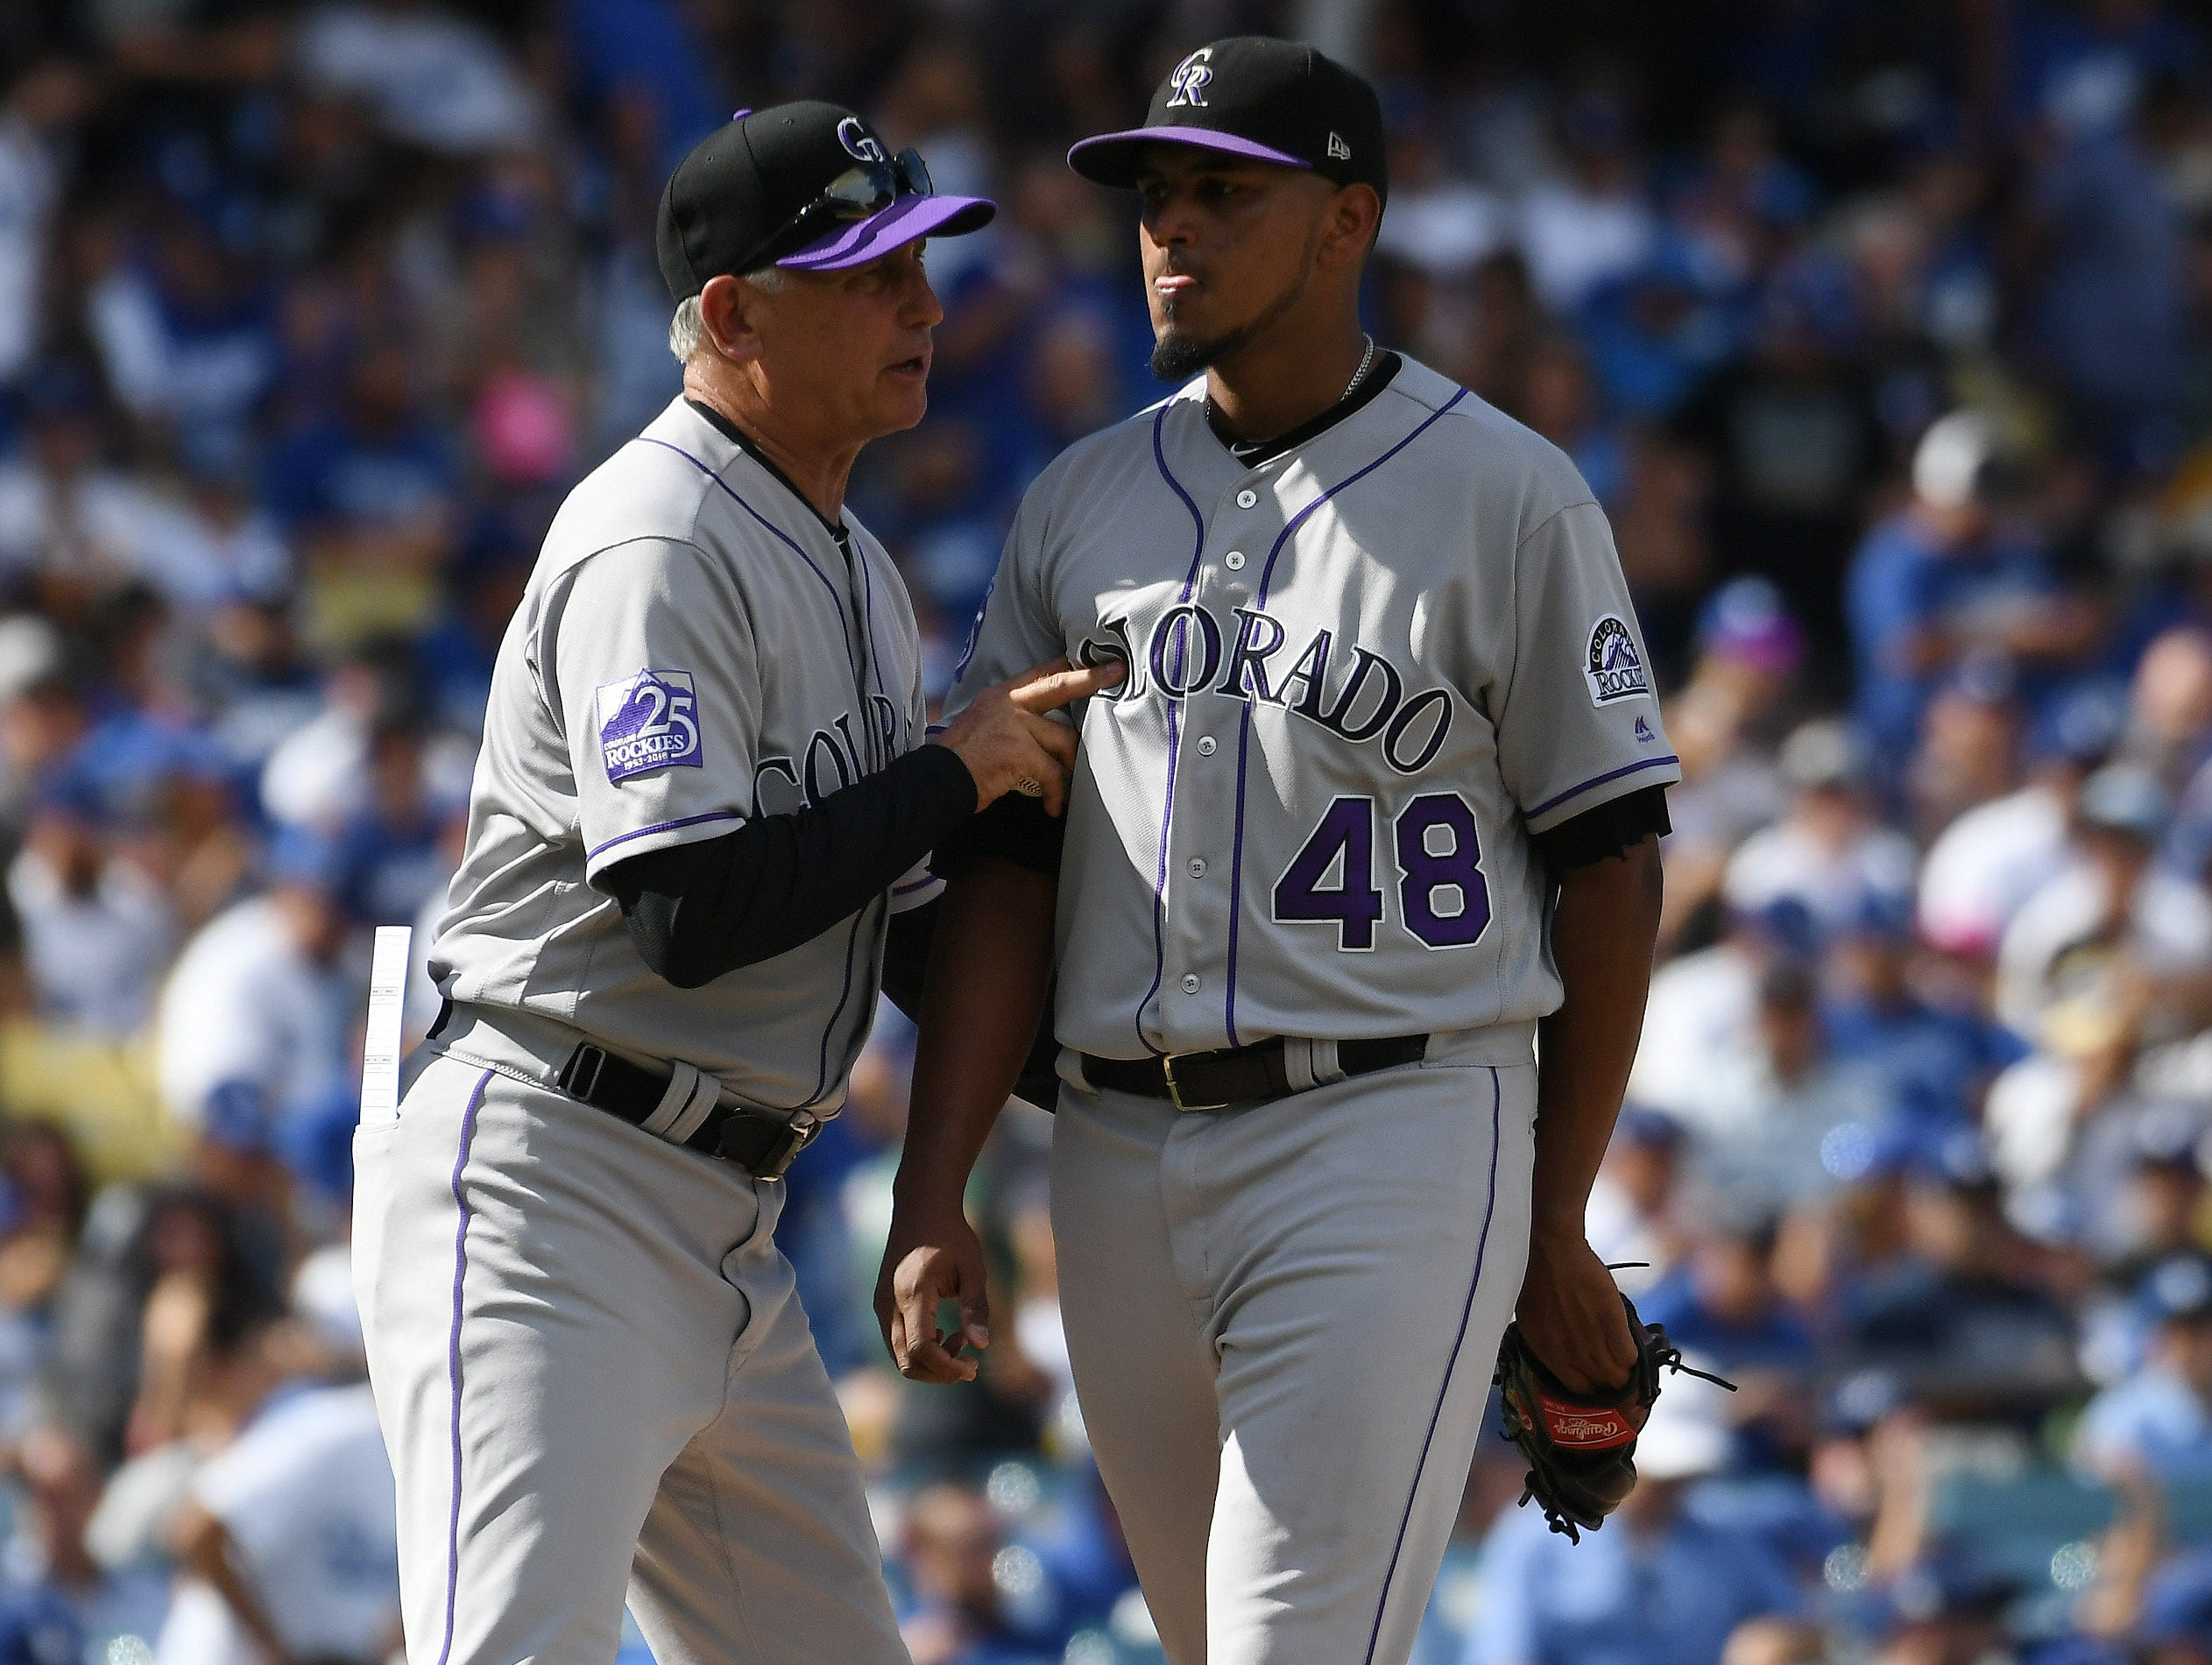 Rockies starter German Marquez reacts after being relieved by manager Bud Black in the fifth inning.